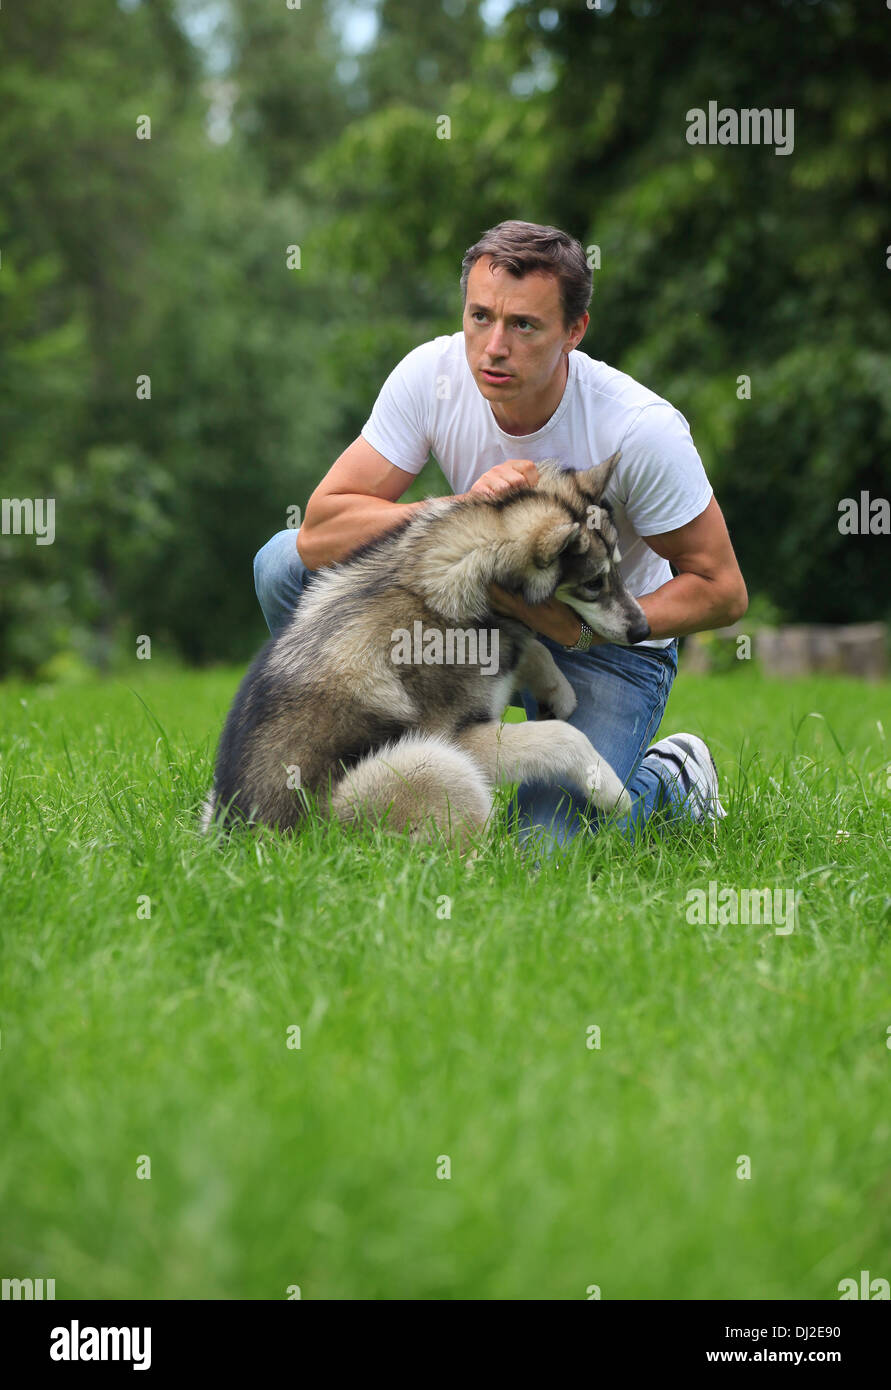 Young man playing with his Alaskan Malamute outdoors - Stock Image